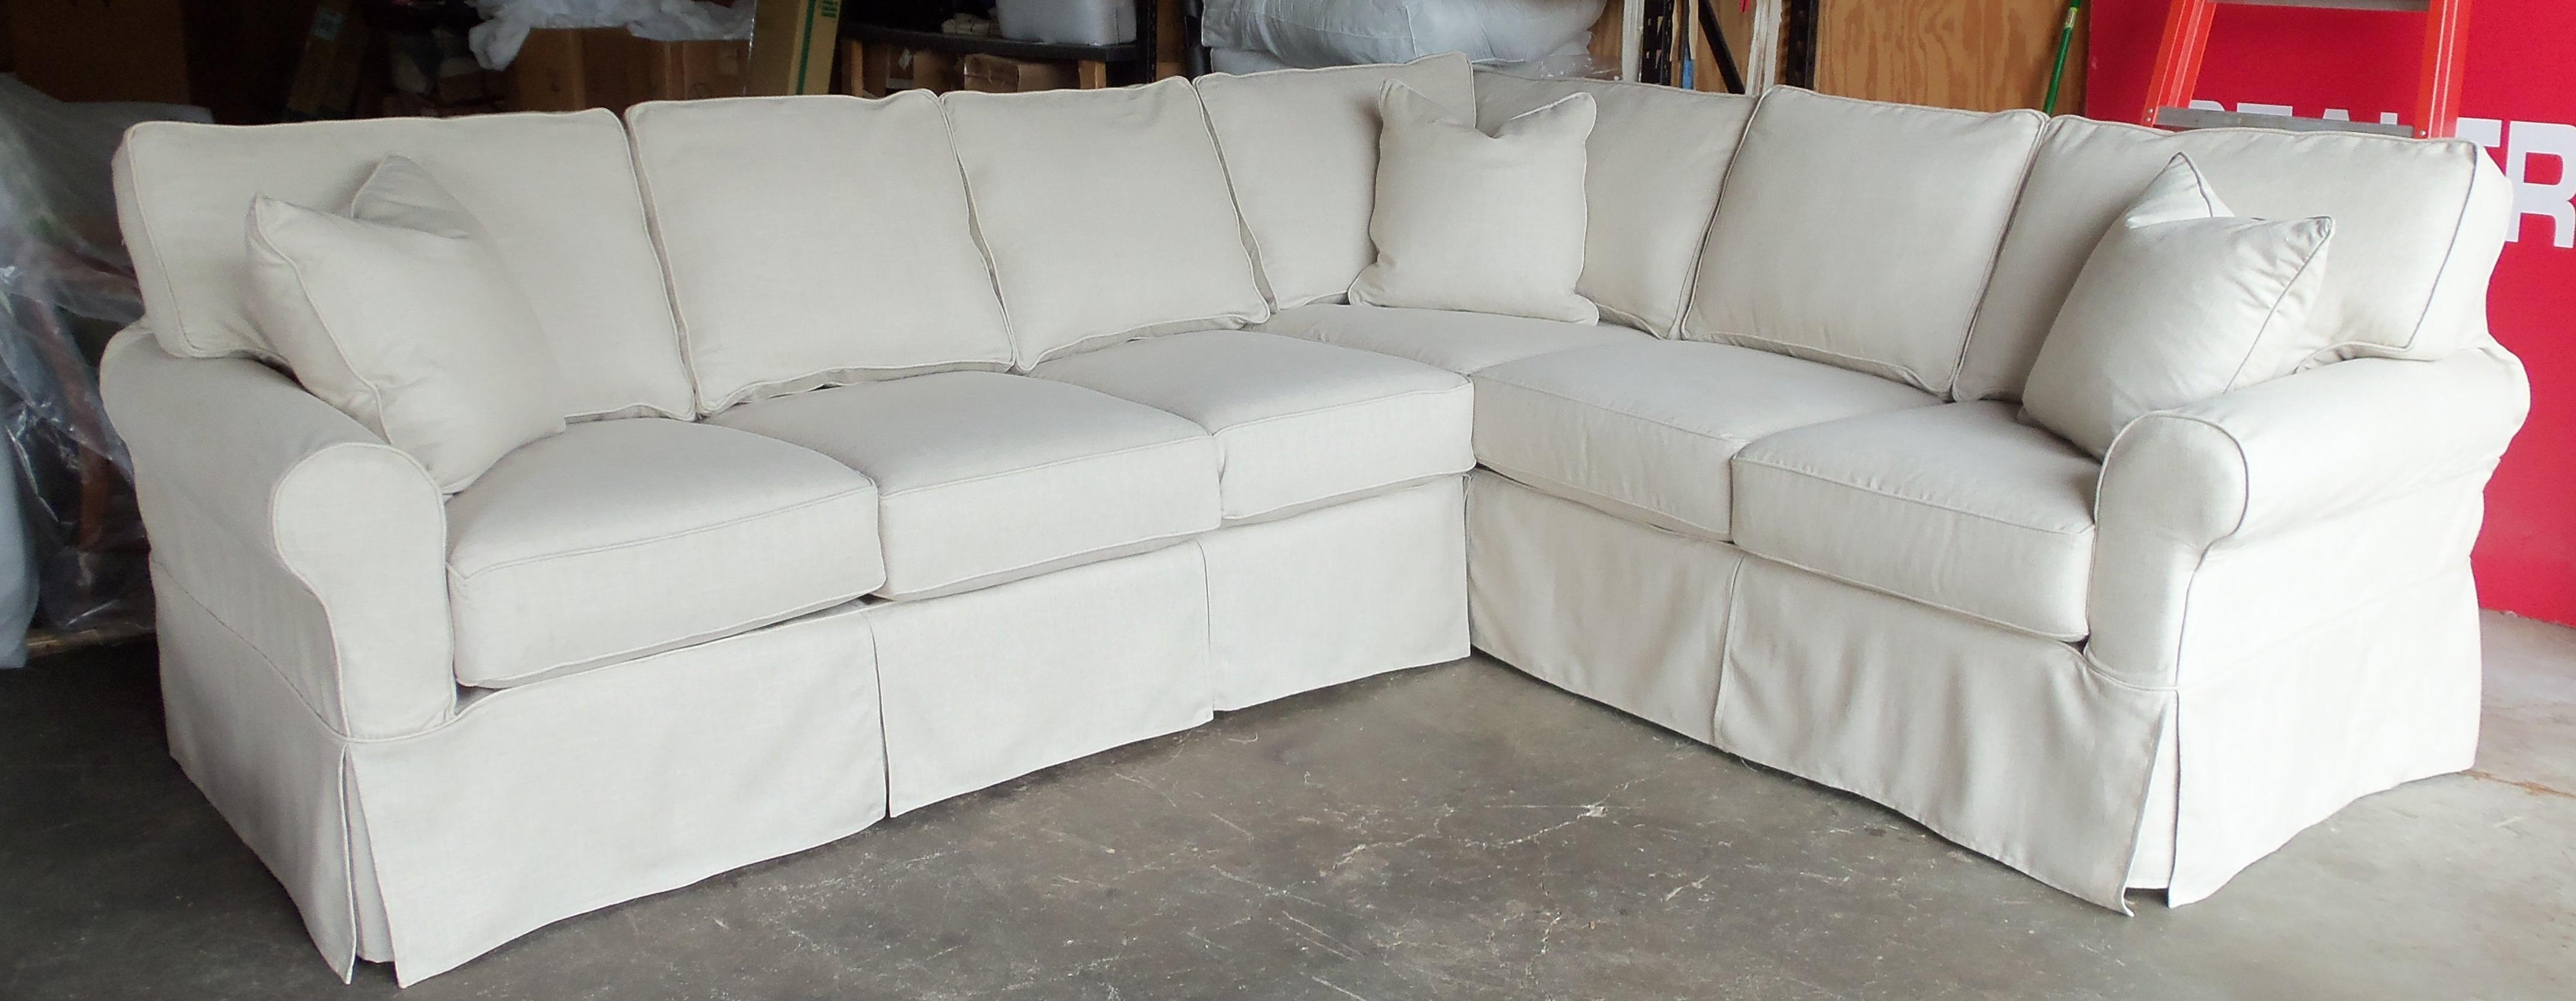 20 Collection of Sectional Sofa Covers